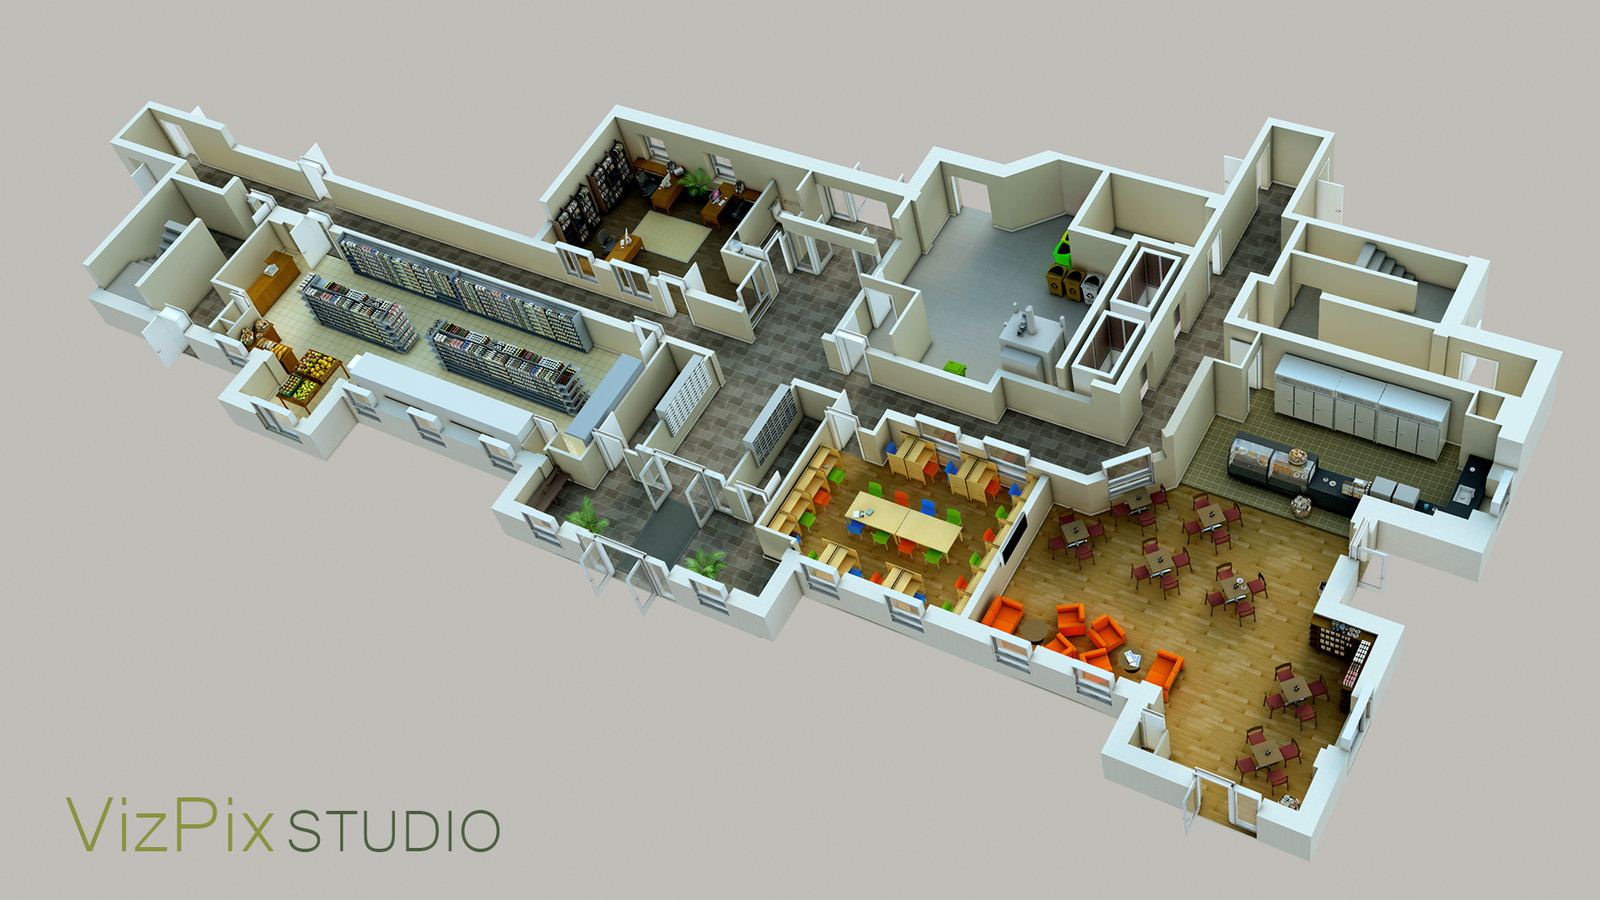 3D Architectural Visualization And